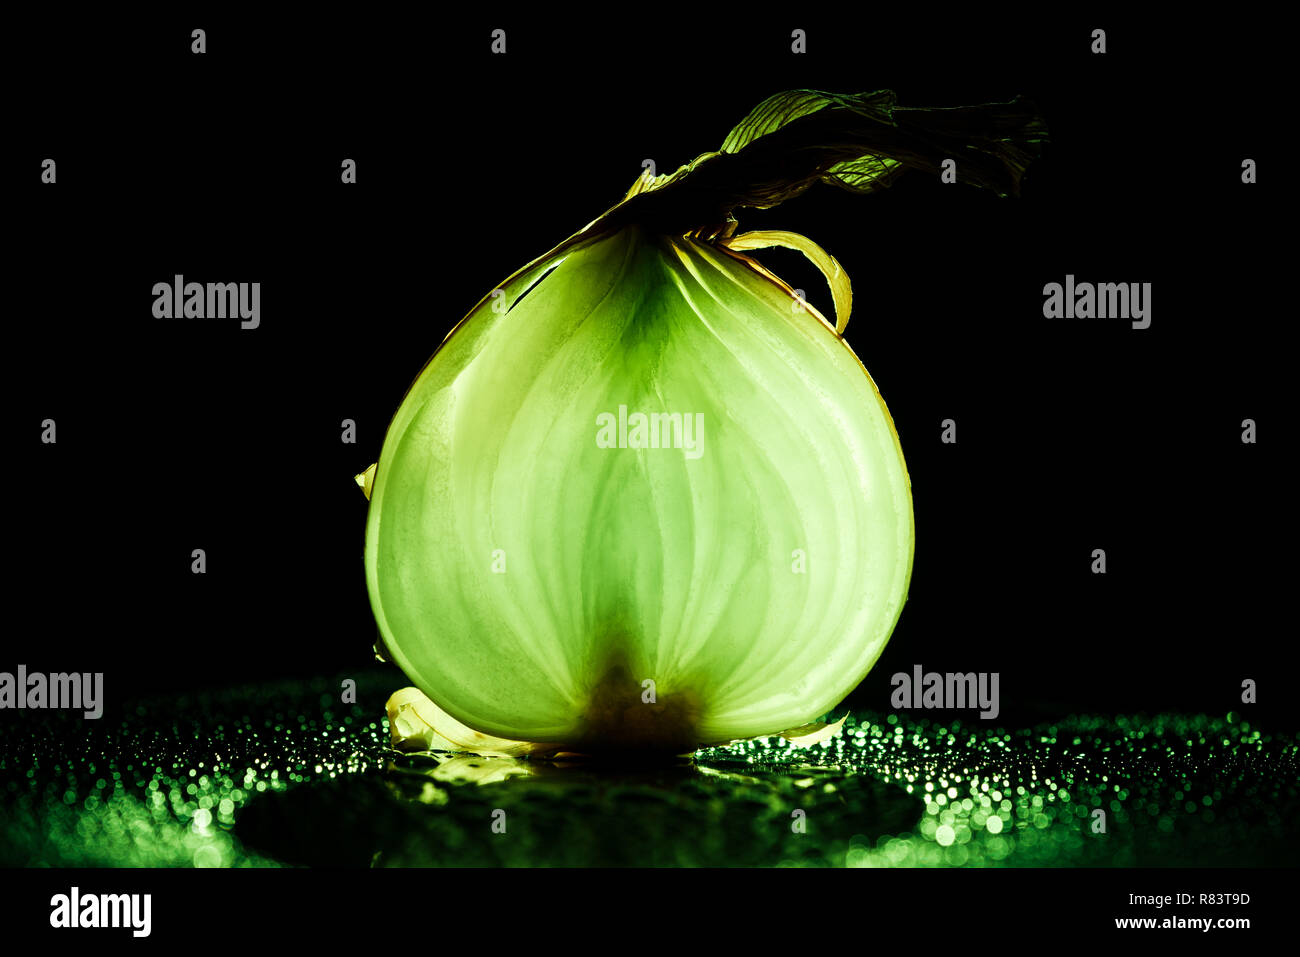 slice of raw onion with water drops and neon green back light on black background - Stock Image